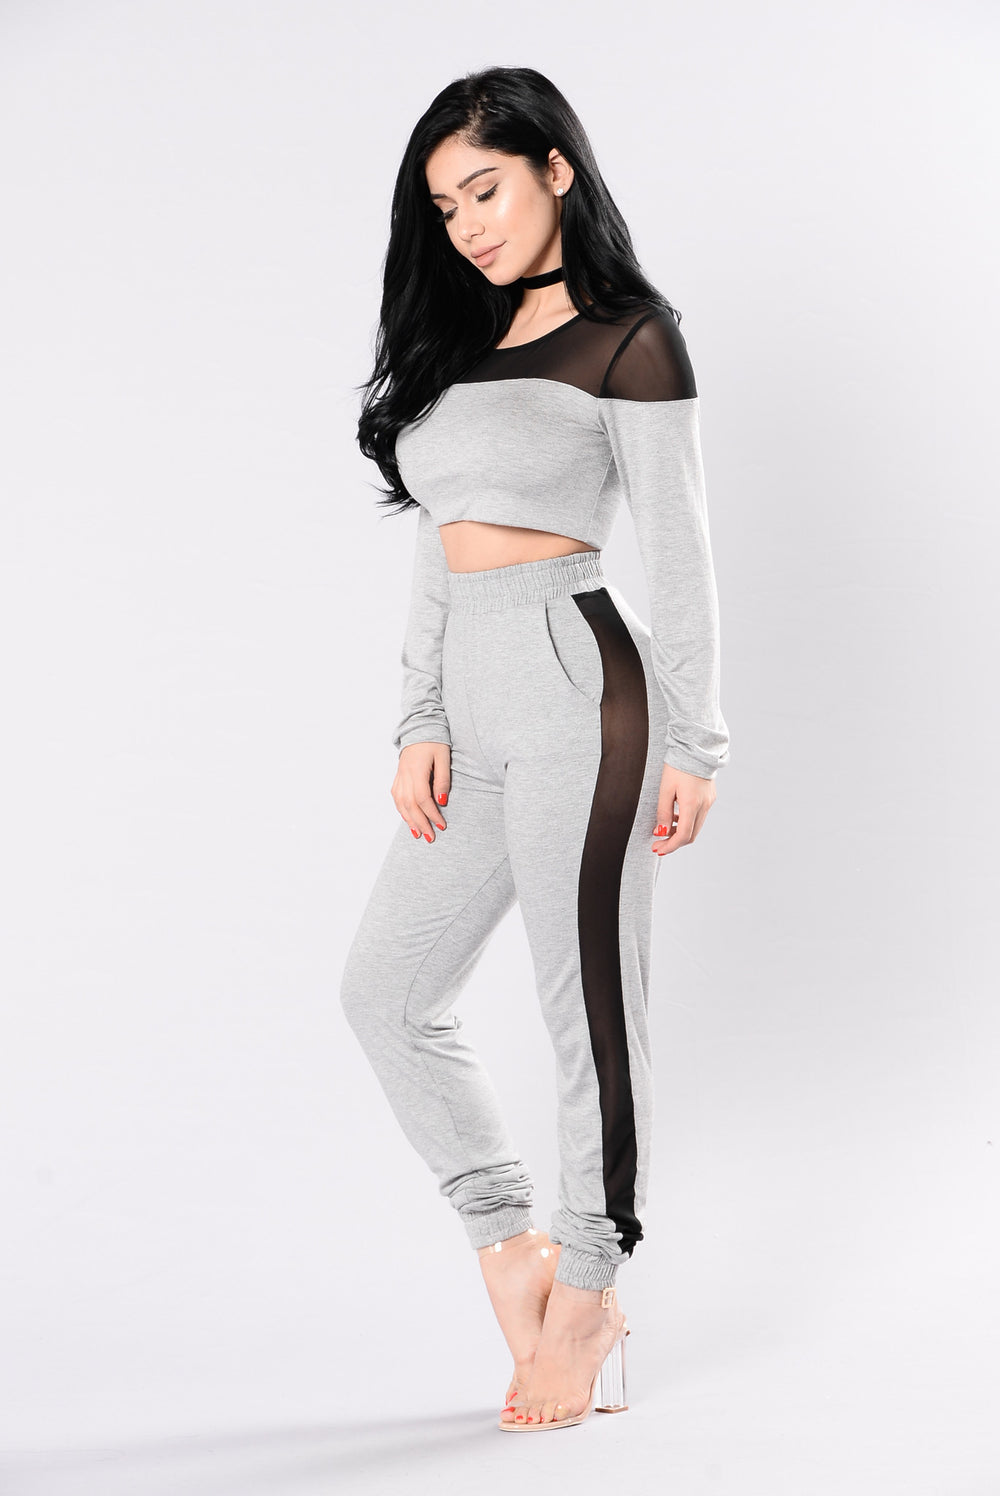 Je T'aime Top - Heather Grey/Black